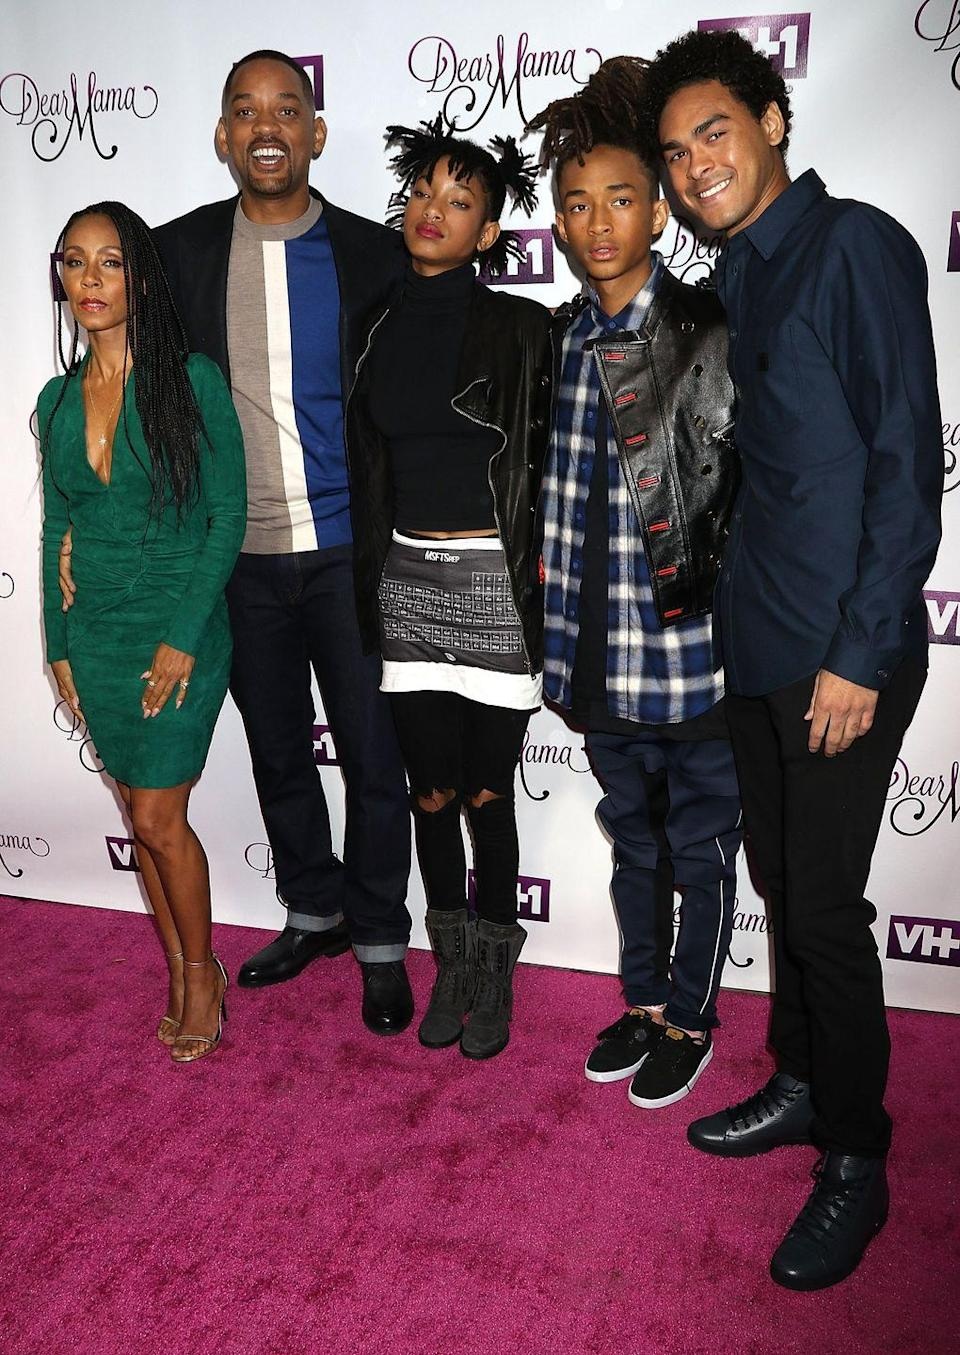 """<p><strong>Children</strong>: Trey Smith (27), Jaden Smith (21), Willow Smith (19) </p><p>The <em>Bad Boys for Life </em>actor is close with his three children, who regularly come out to <a href=""""https://www.oprahmag.com/entertainment/tv-movies/a27555415/will-smith-jada-pinkett-smith-aladdin-premiere-photos/"""" rel=""""nofollow noopener"""" target=""""_blank"""" data-ylk=""""slk:support him at movie premieres"""" class=""""link rapid-noclick-resp"""">support him at movie premieres</a> even as adults. He fathered his eldest, Trey, with his ex Sheree Zampino, and his younger children, Jaden and Willow, with <a href=""""https://www.oprahmag.com/life/relationships-love/a26814630/will-and-jada-pinkett-smith-marriage/"""" rel=""""nofollow noopener"""" target=""""_blank"""" data-ylk=""""slk:longtime wife Jada Pinkett Smith"""" class=""""link rapid-noclick-resp"""">longtime wife Jada Pinkett Smith</a>.</p>"""